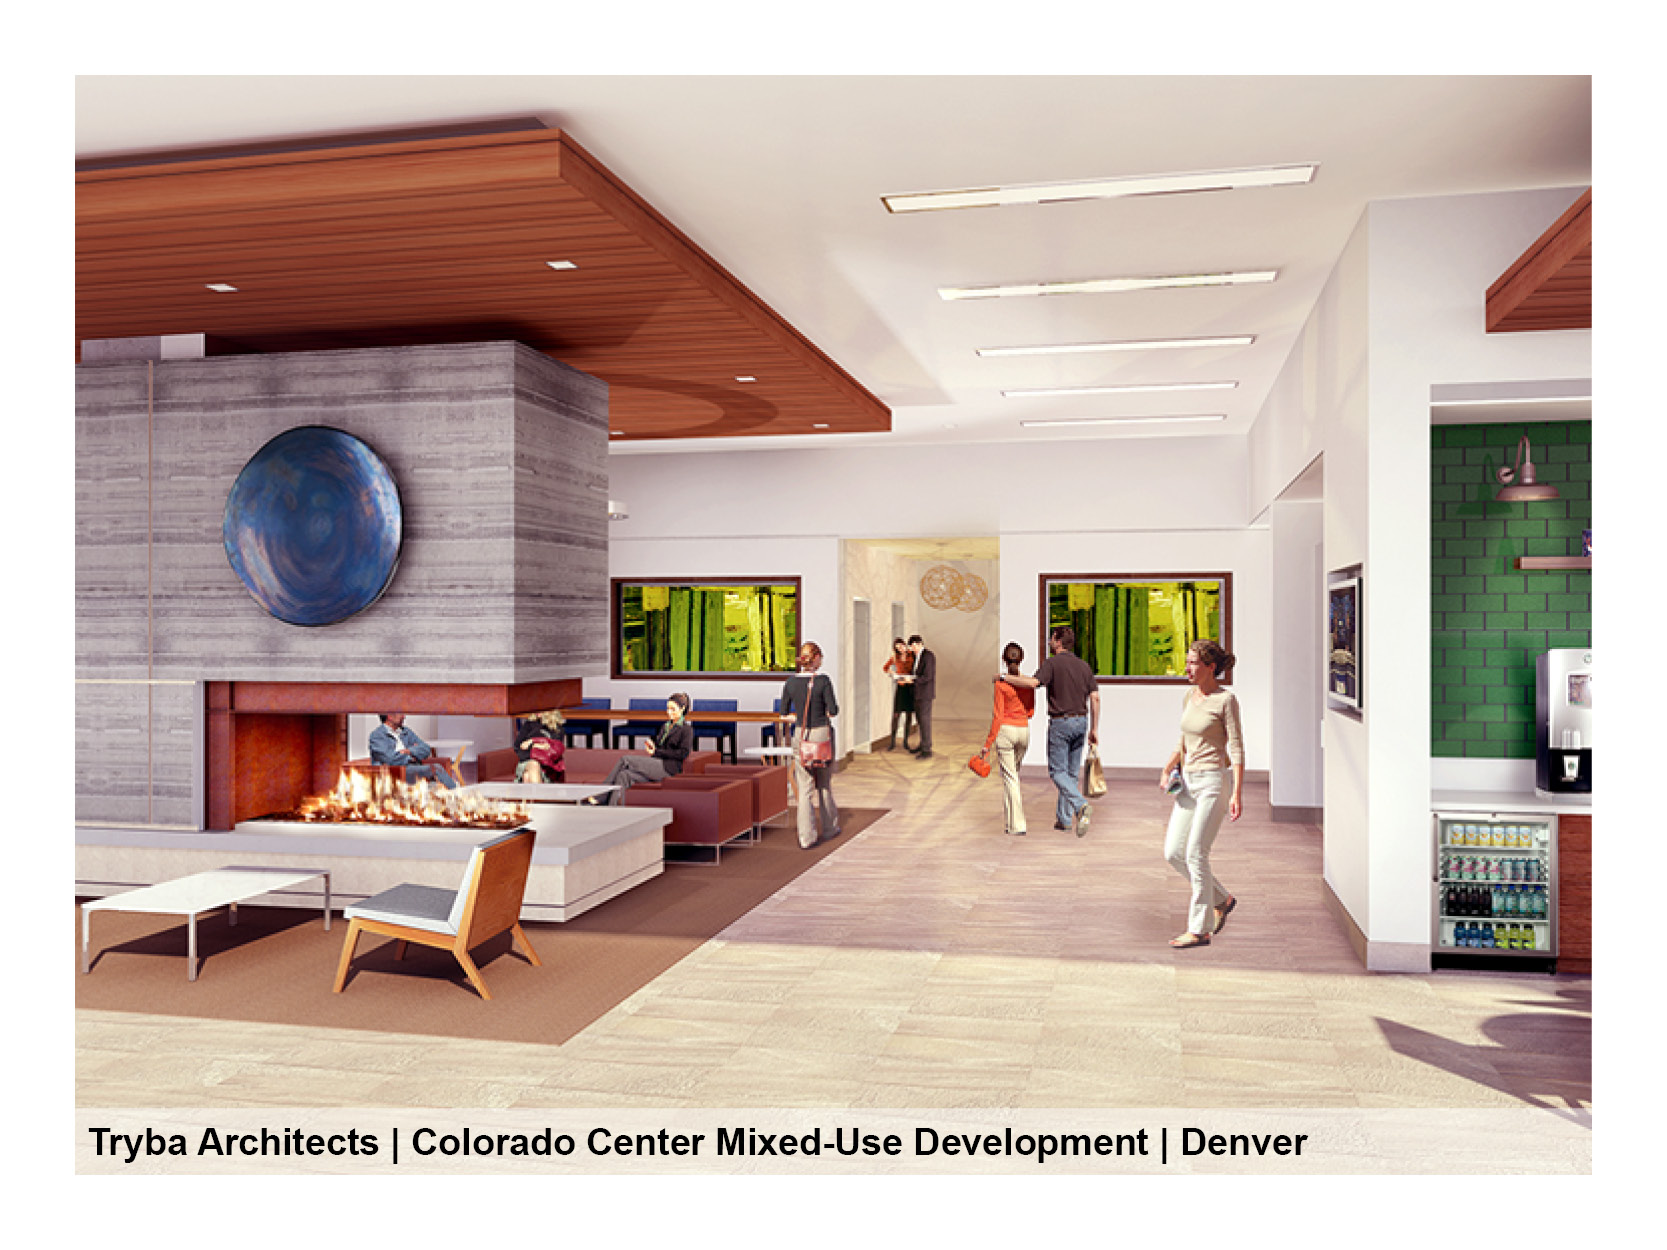 Tryba Architects | Colorado Center Mixed-Use Development